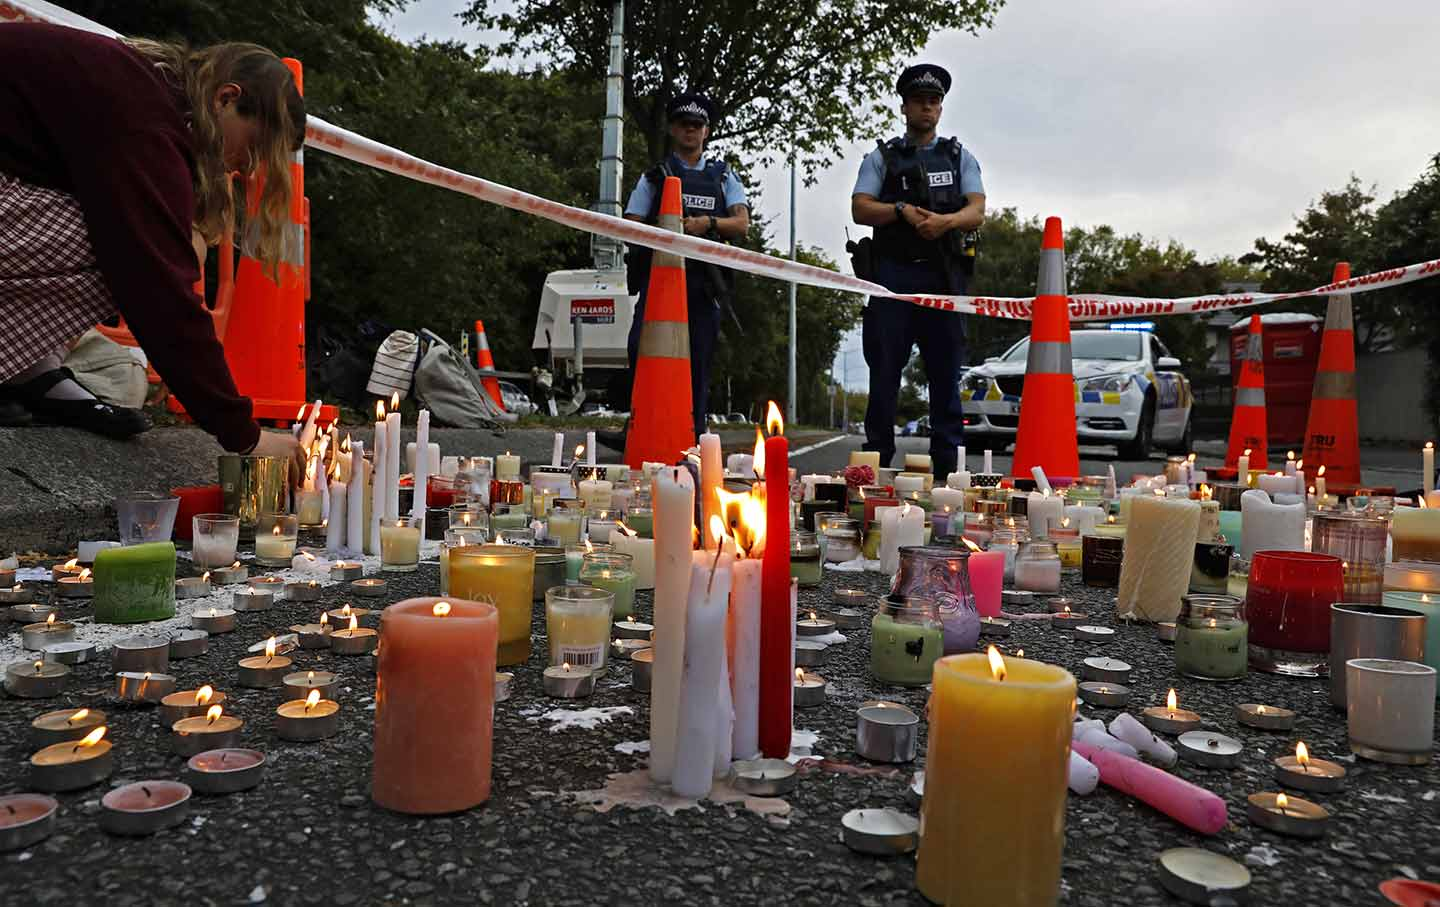 New Zealand Attack: Take Action Now: Stand Against Islamophobia